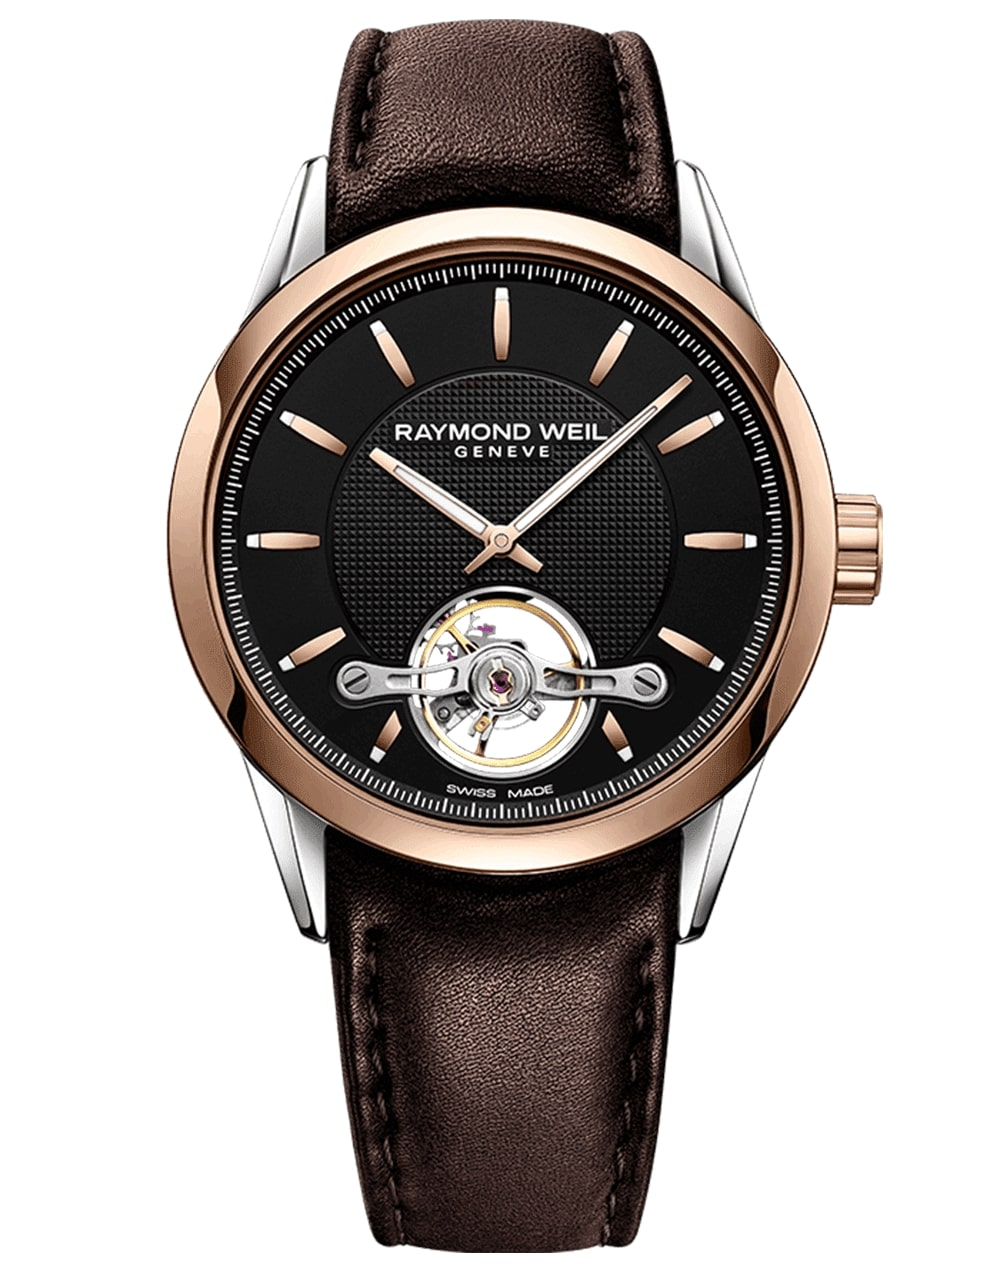 Men's Rose Gold Automatic Raymond Weil Watch